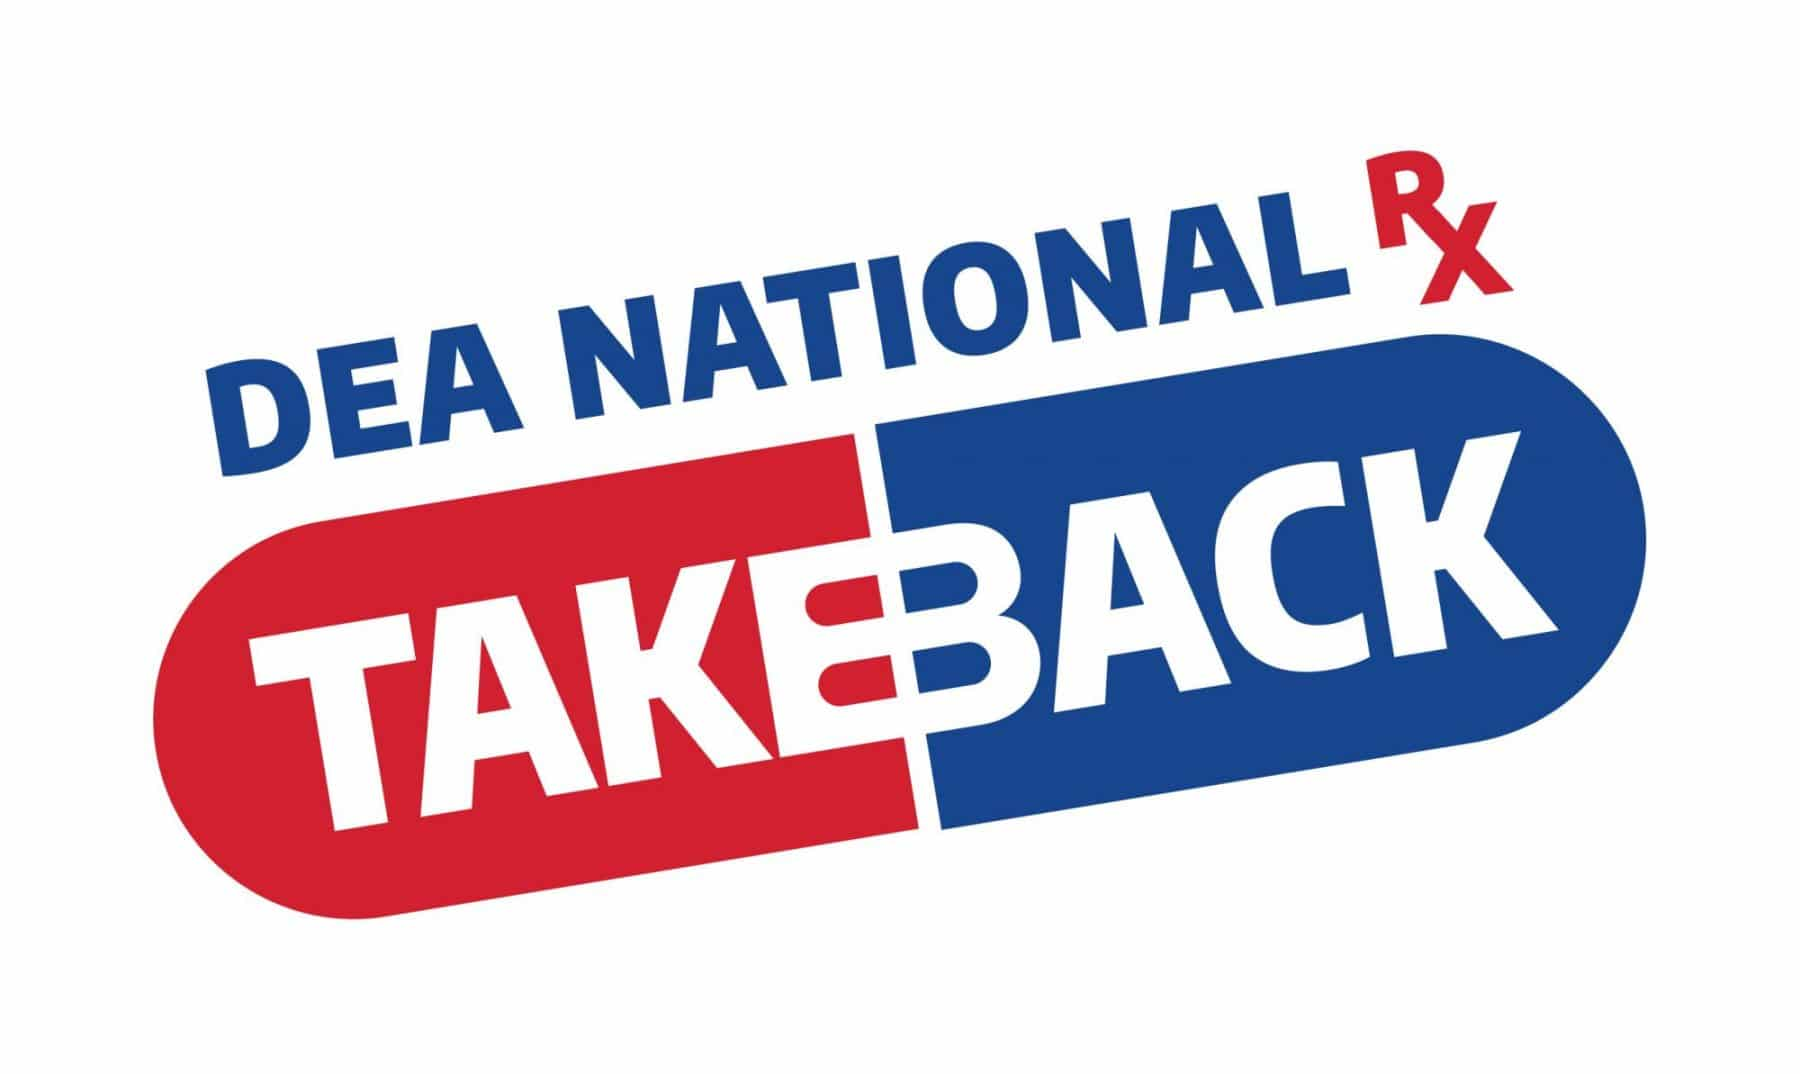 National Prescription Drug Take Back Day – 27 OCTOBER 2018